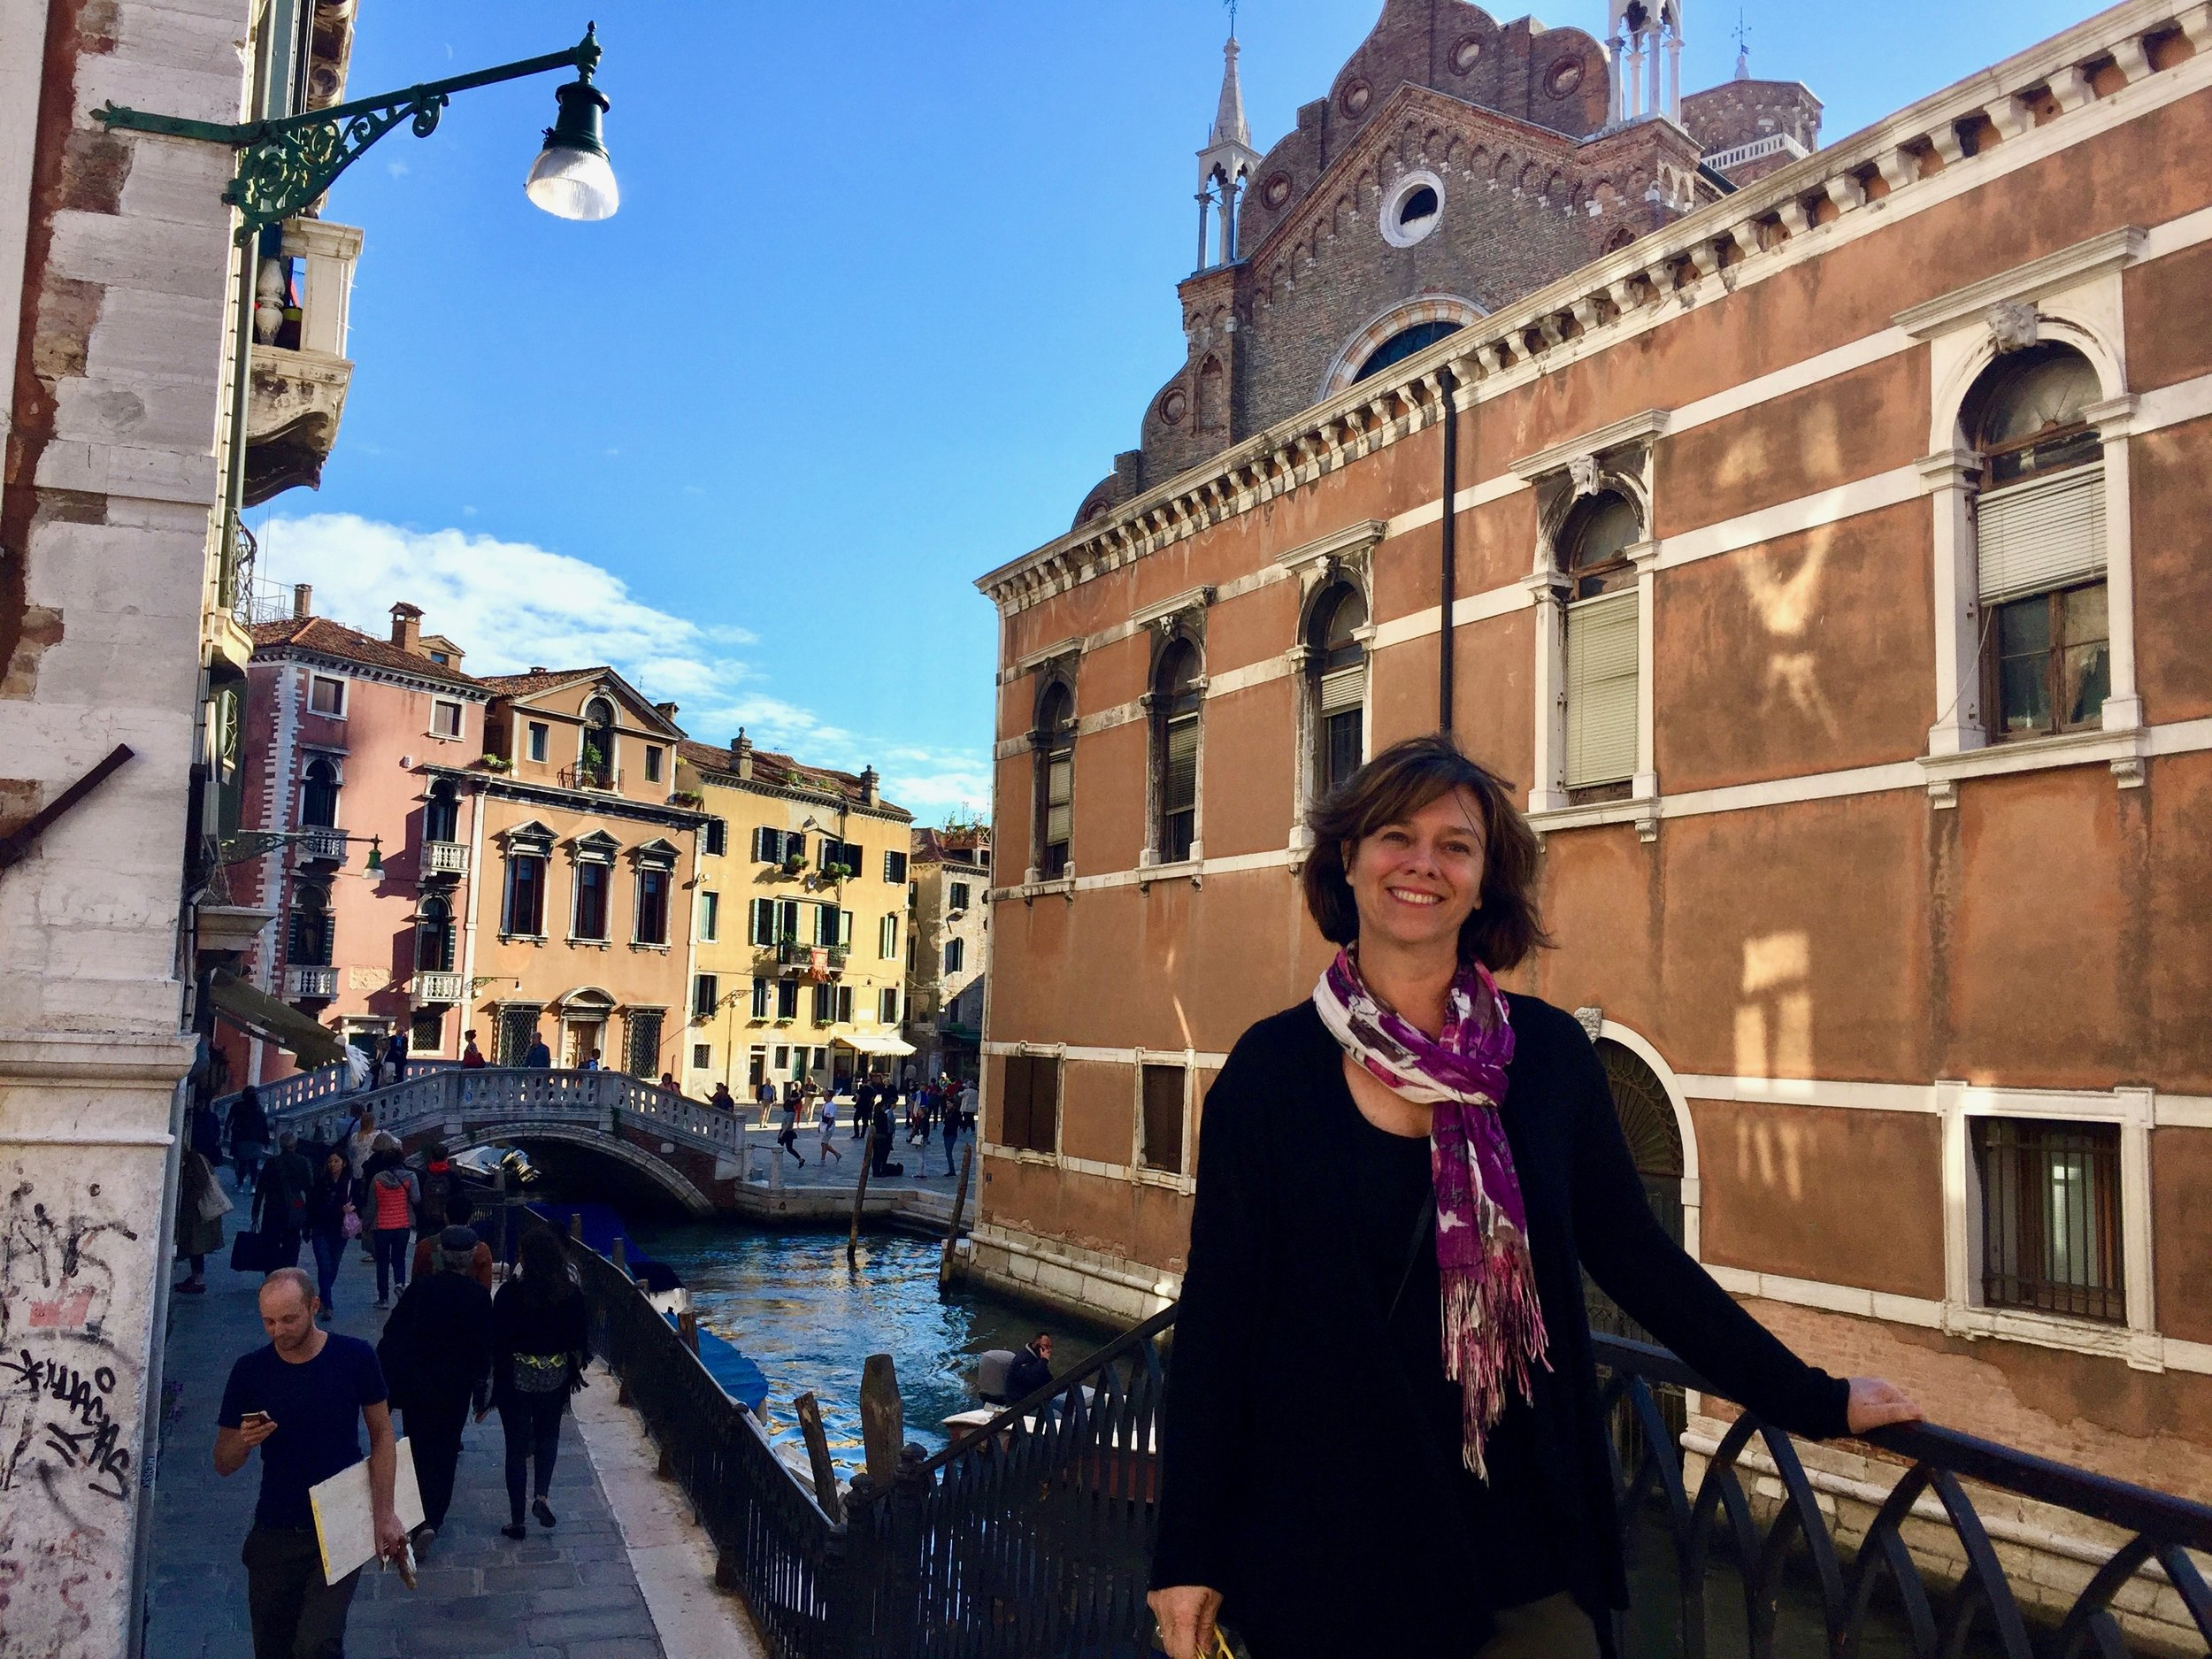 Along the canals in the Cannaregio sestiere